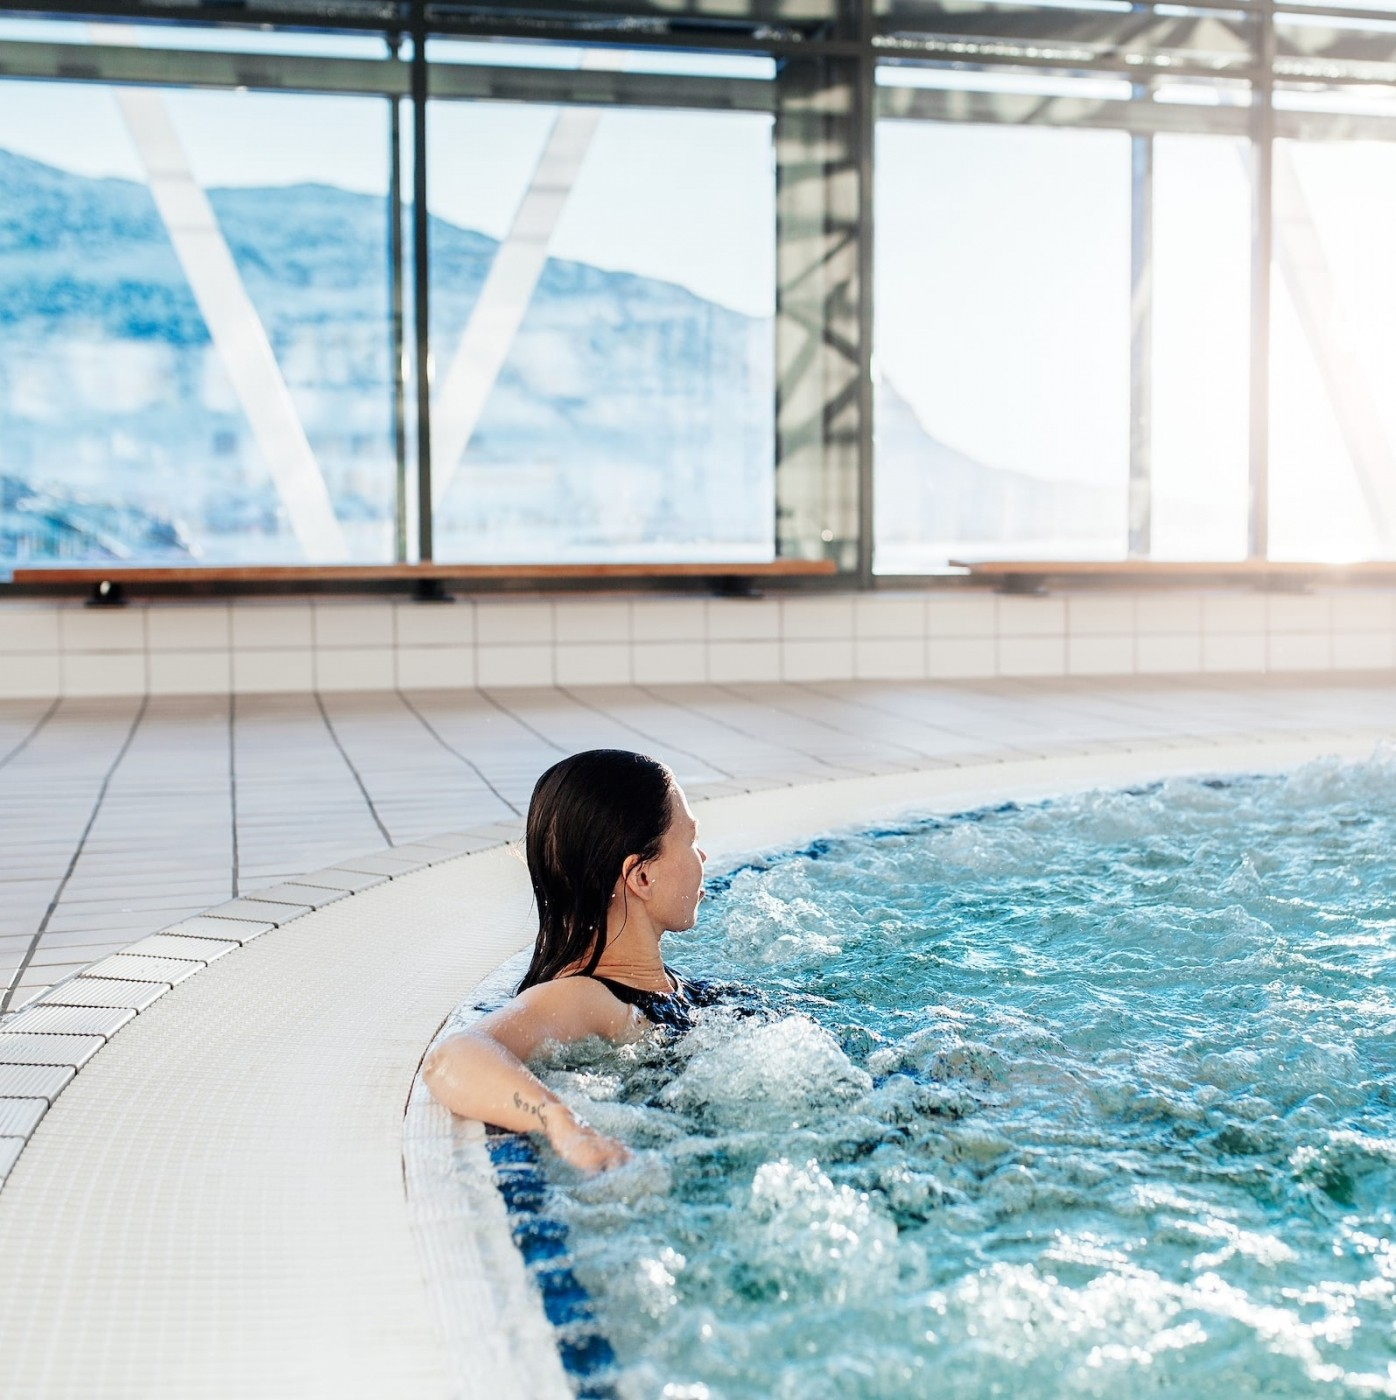 Woman relaxing in the bubble bath in the indoor swimming pool Malik in Nuuk in Greenland. Photo by Rebecca Gustafsson - Visit Greenland